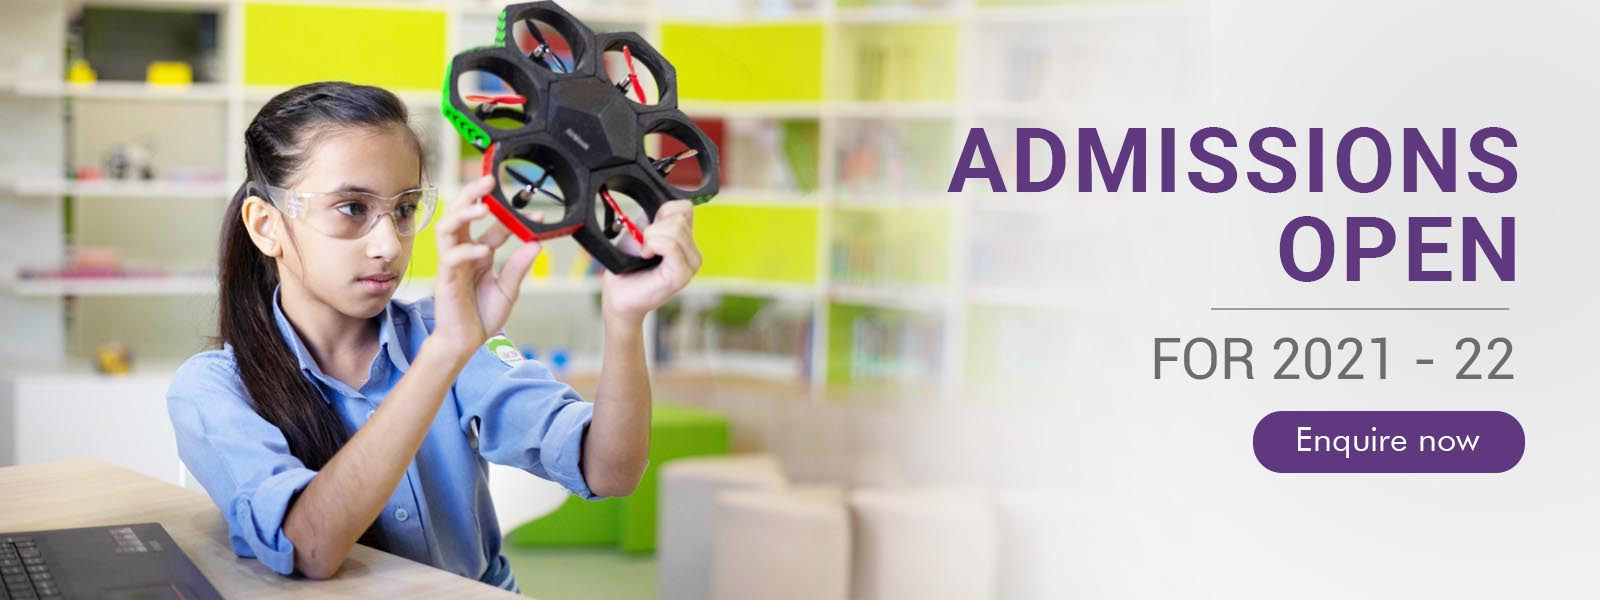 jbcn international school chembur admissions open 2021-22